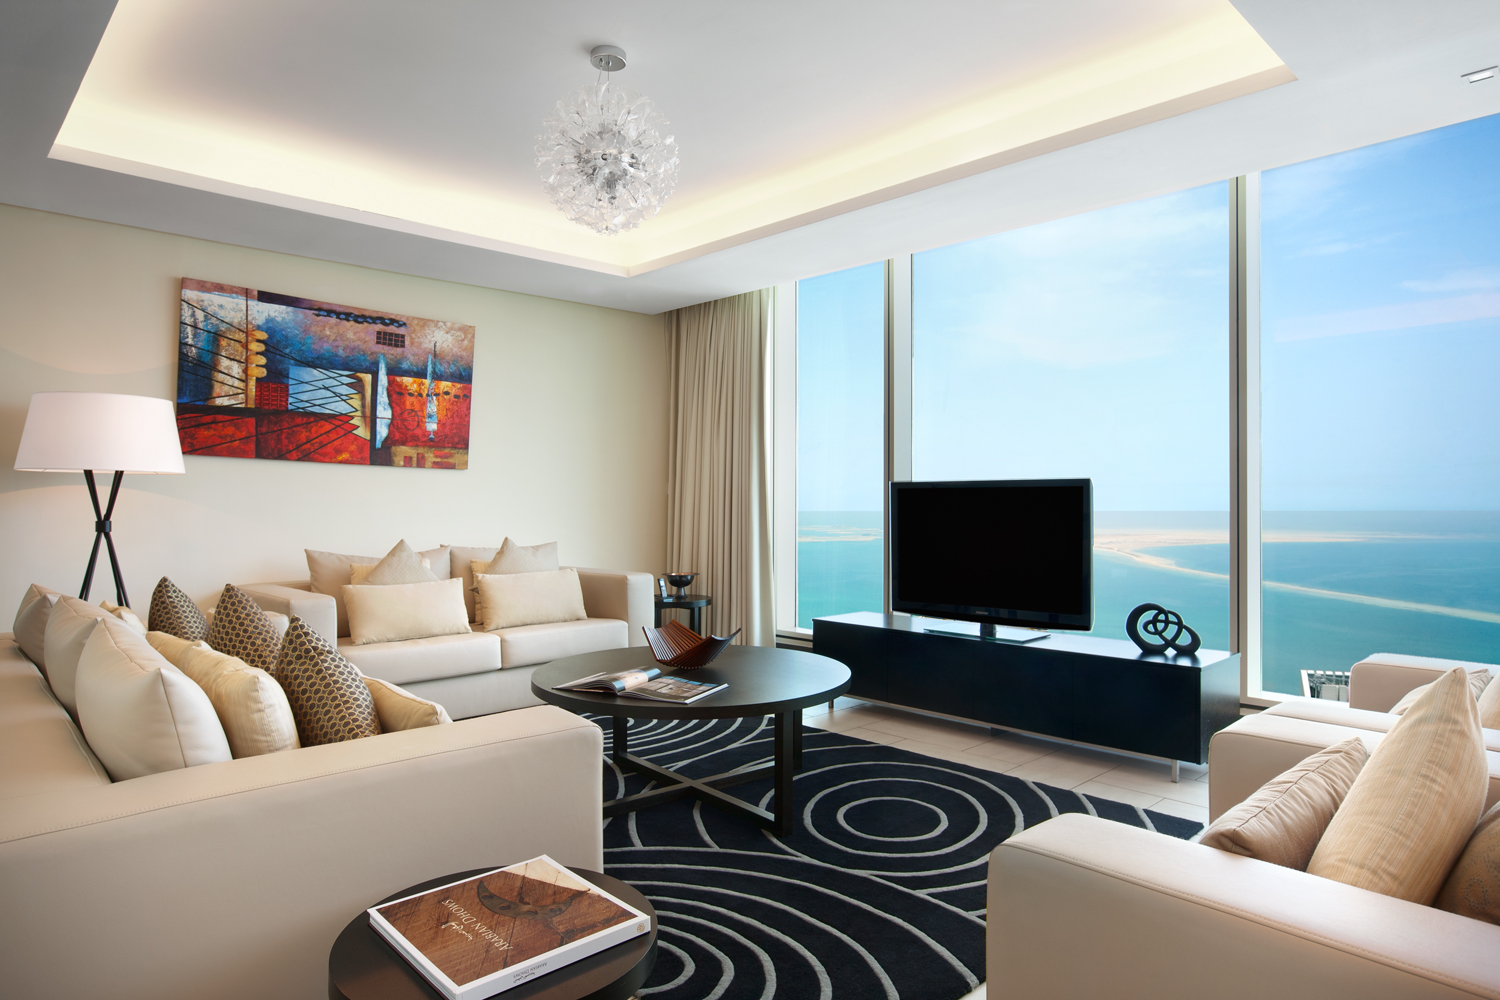 3 Bedroom Luxury Apartments in West Bay with Beach